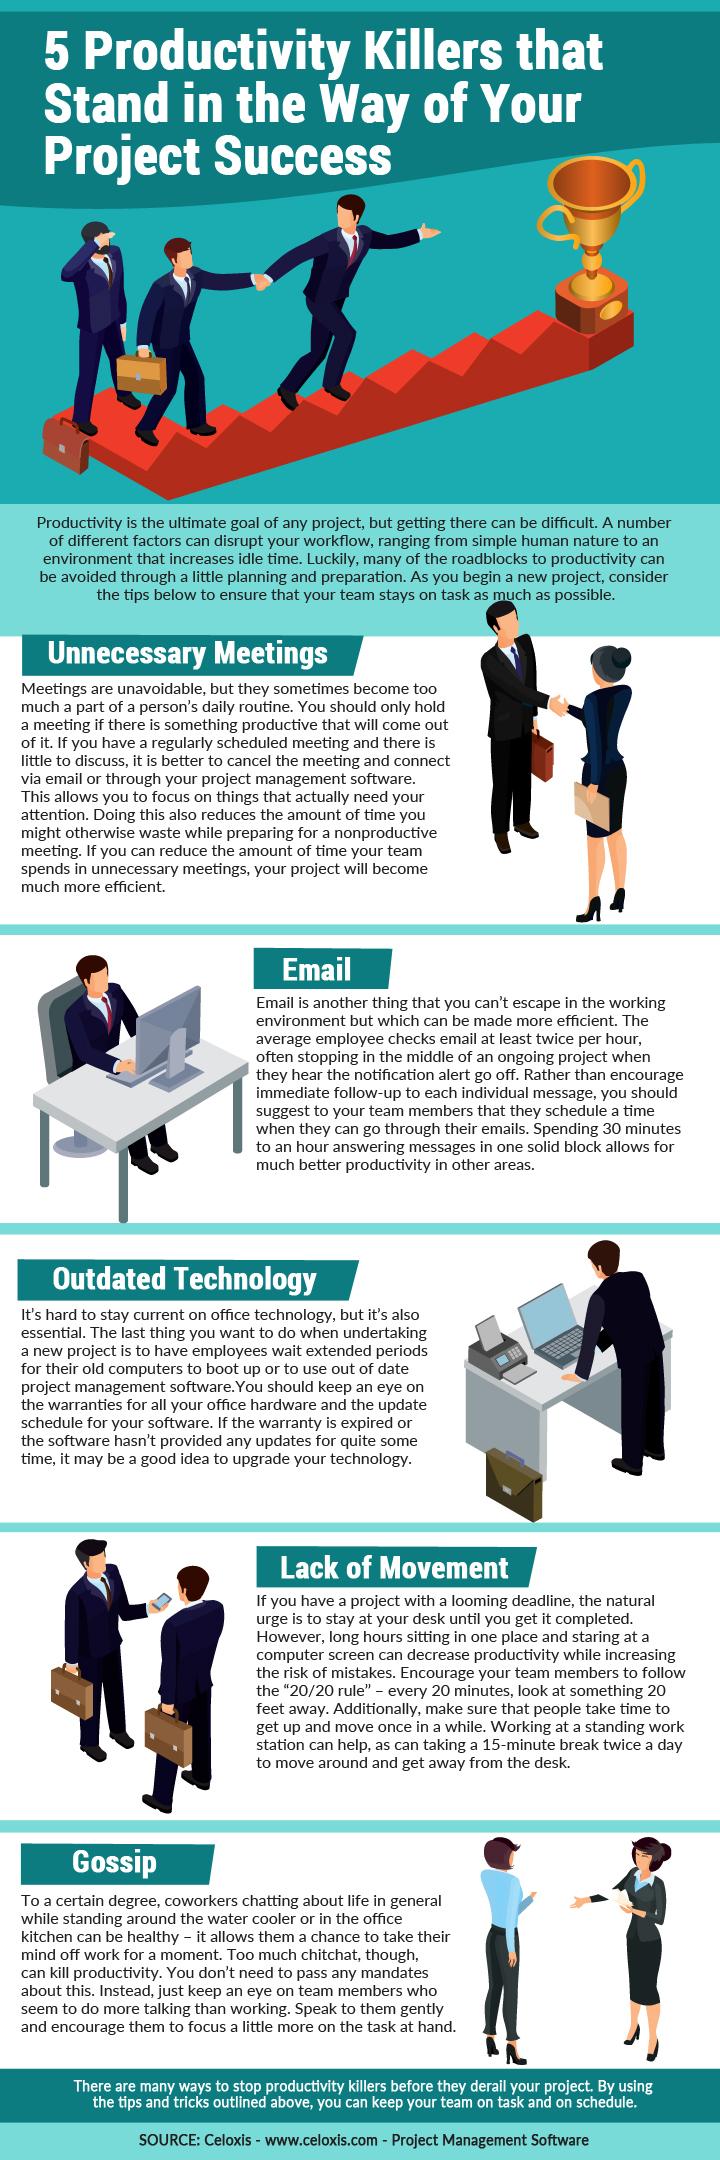 5_Productivity_killers_that_stand_in_the_way_of_your_project_success